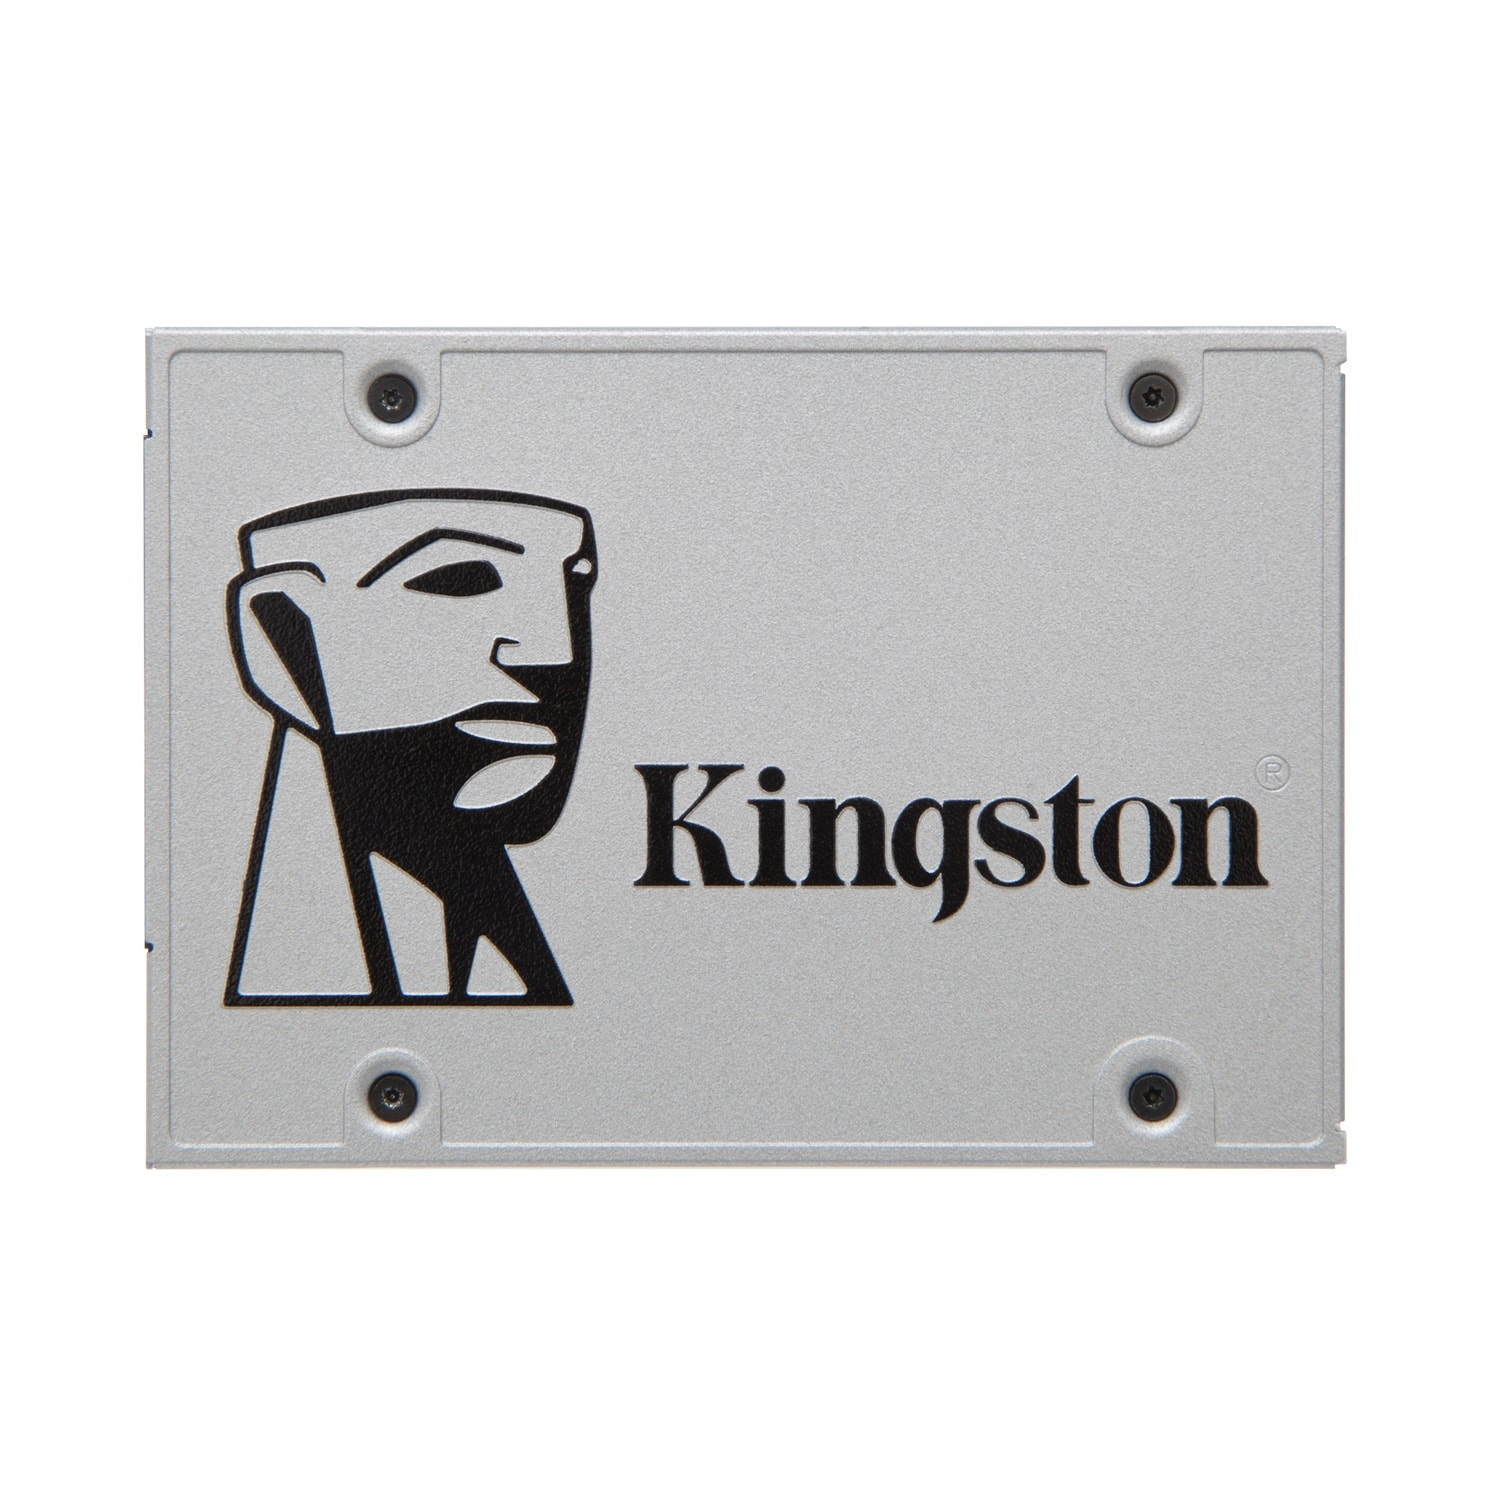 Kingston UV400 480-525Go - Disque SSD Kingston - Cybertek.fr - 1